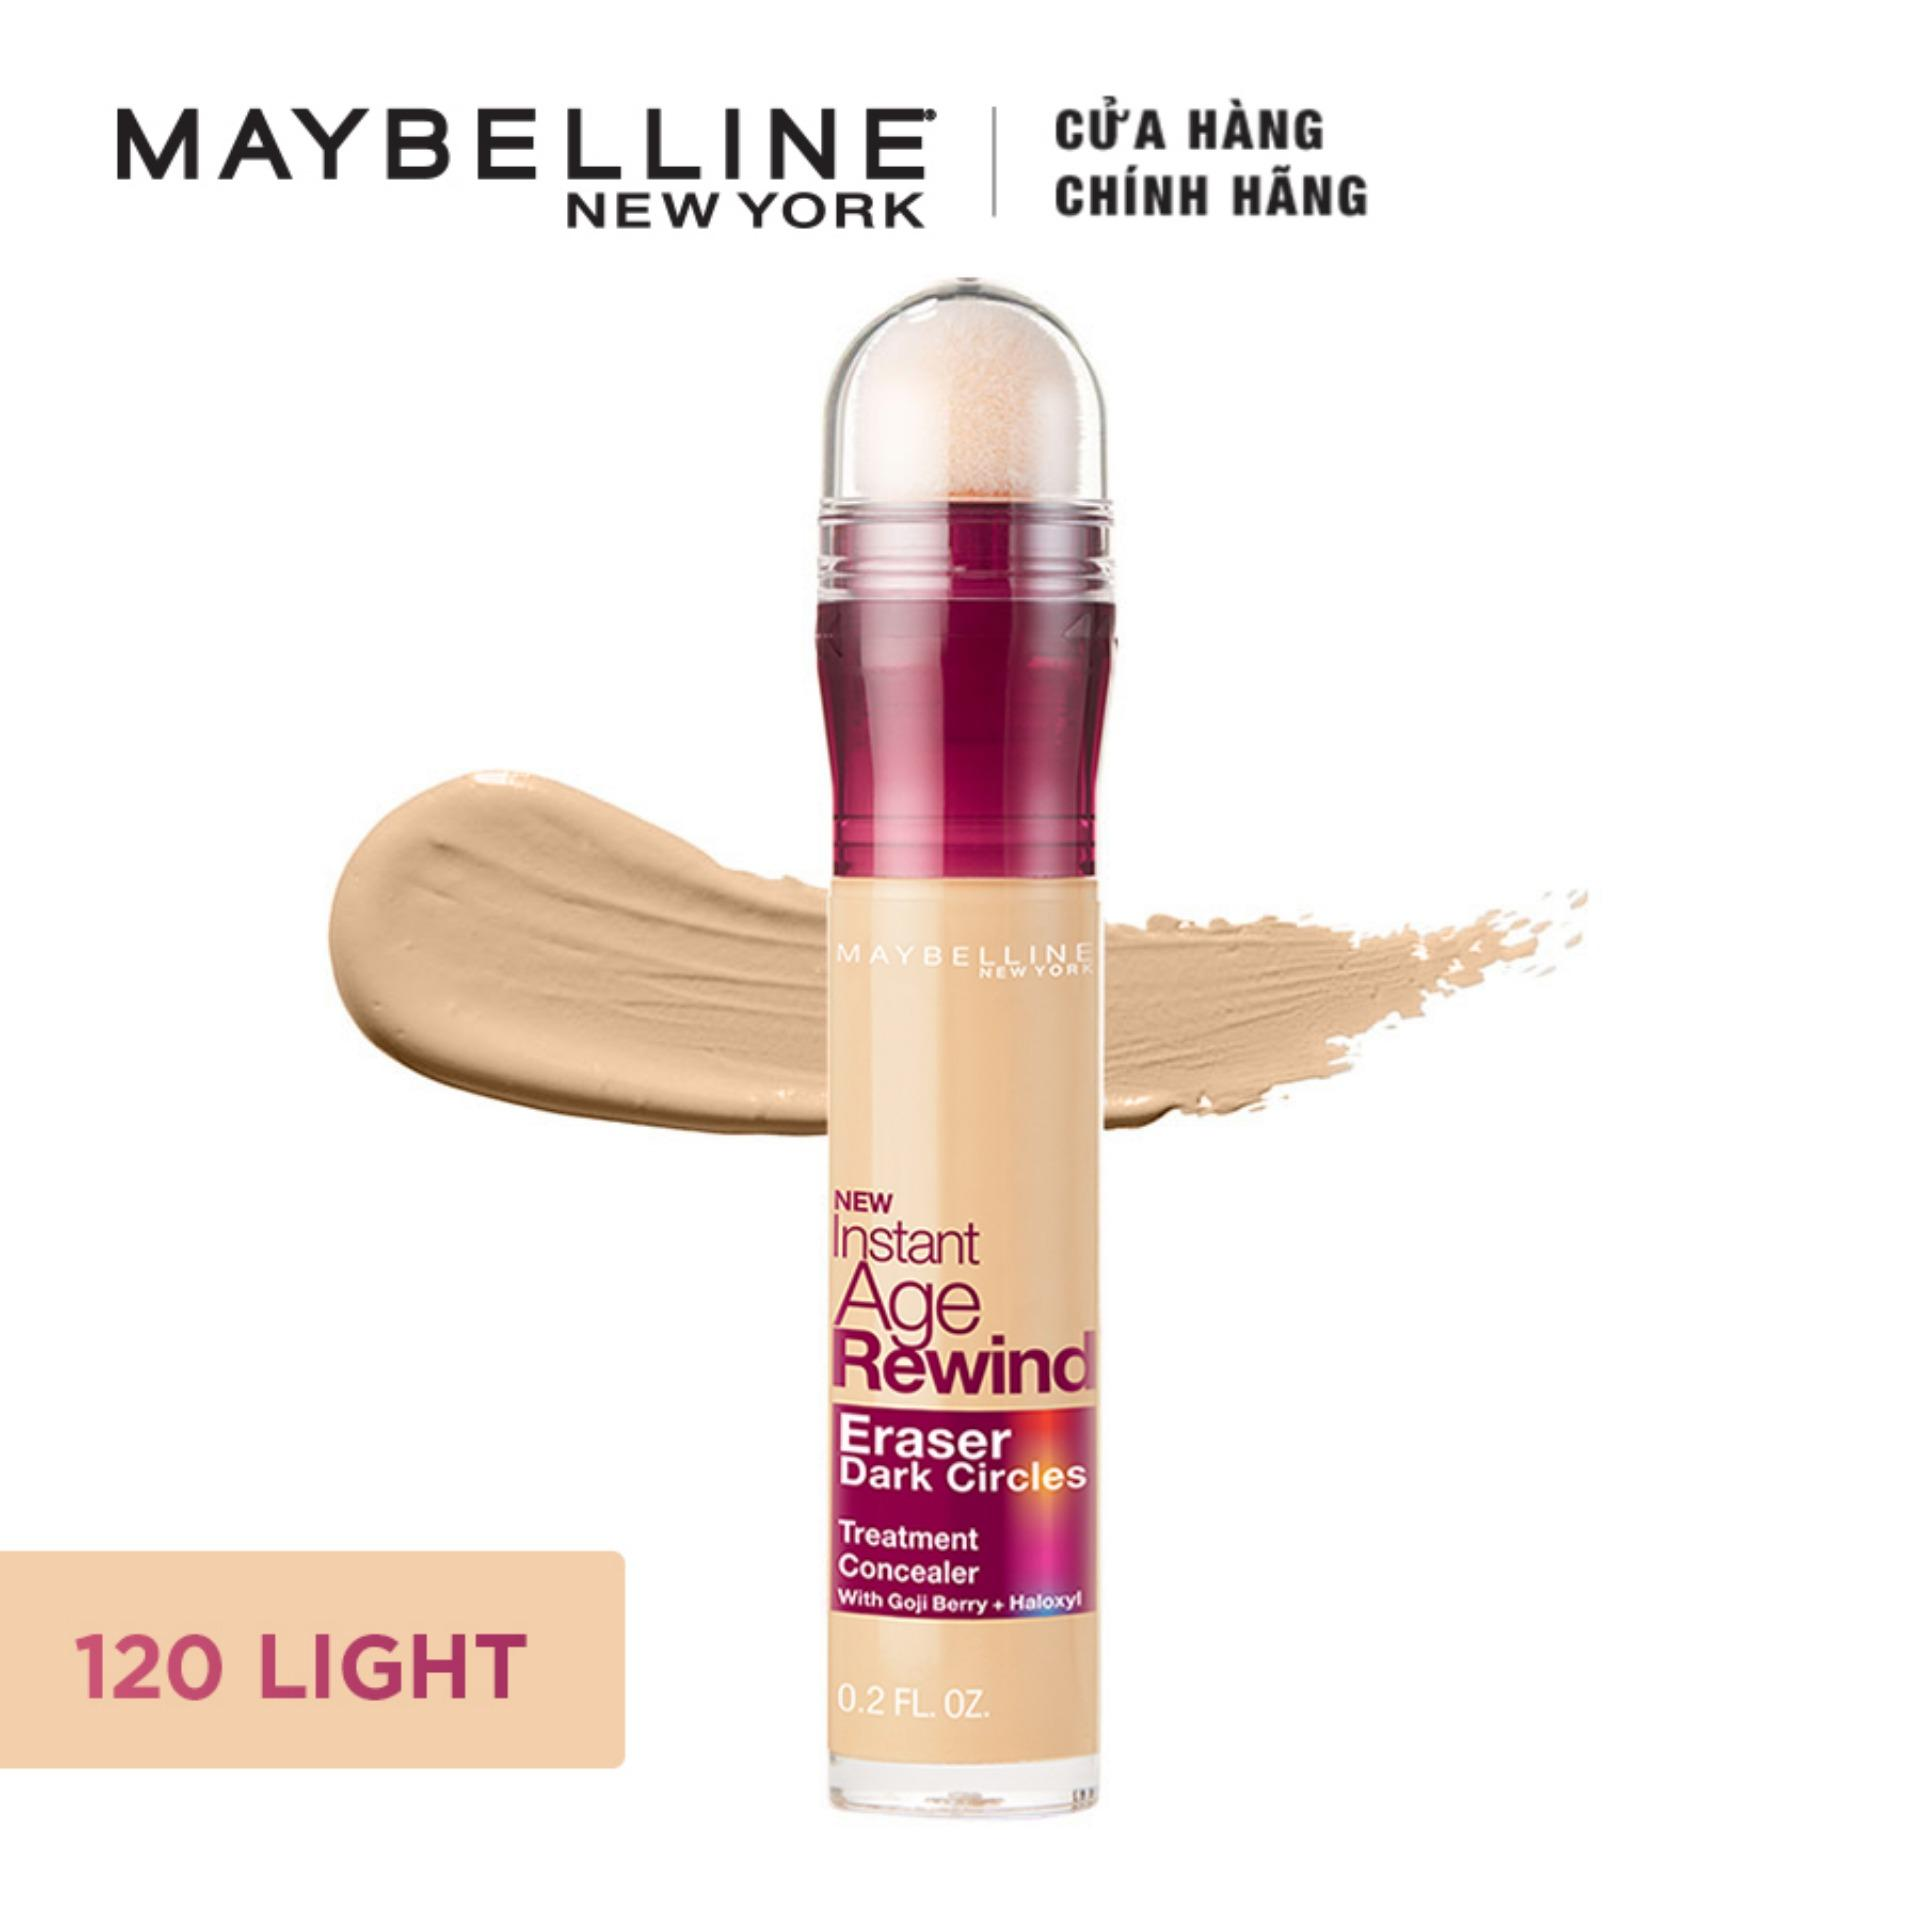 Bút cushion che khuyết điểm, giảm quầng thâm Maybelline New York Instant Age Rewind Concealer 6ml